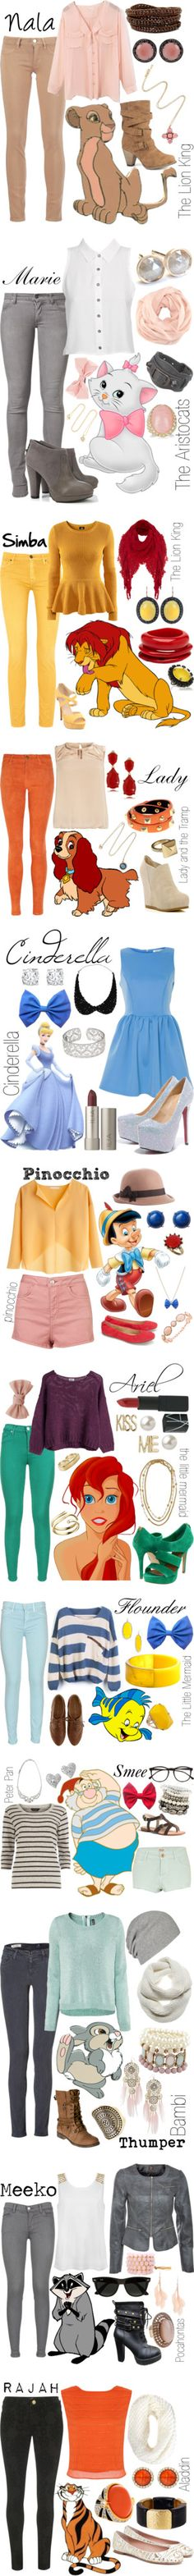 """✦Disney Inspired Looks✦"" by koolkid4ever on Polyvore"